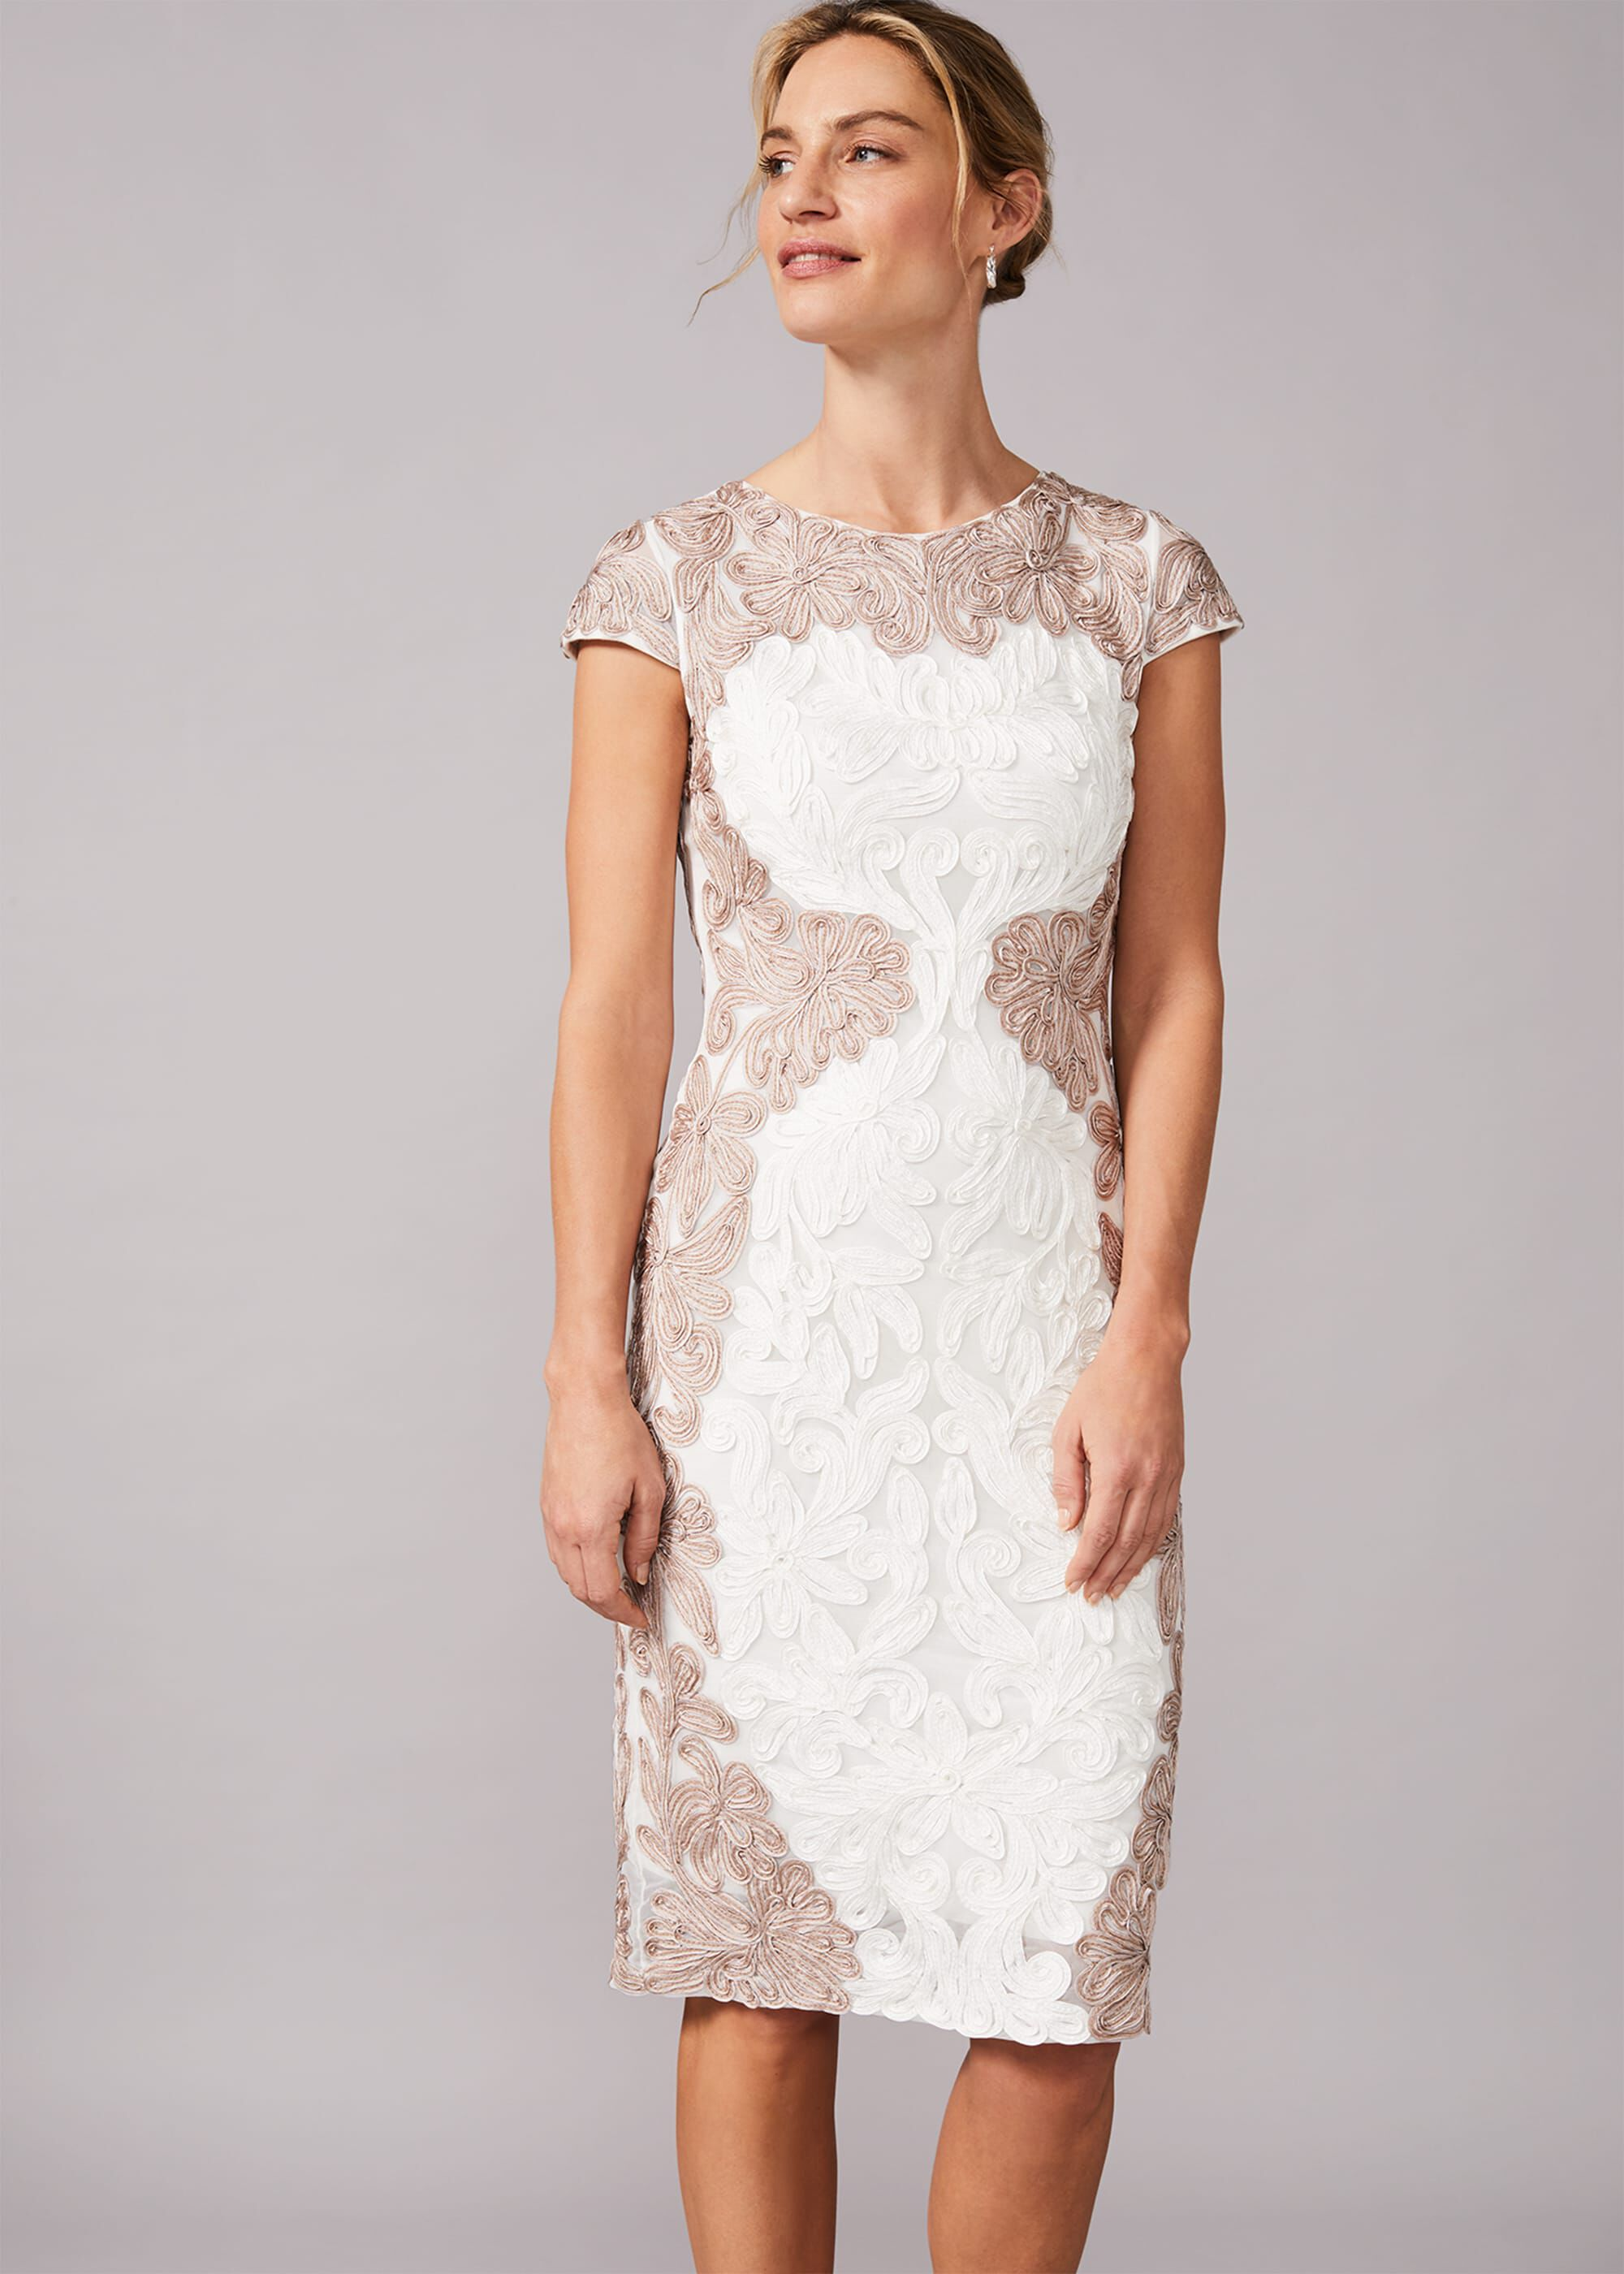 Phase Eight Nori Tapework Lace Fitted Dress, Cream, Fitted